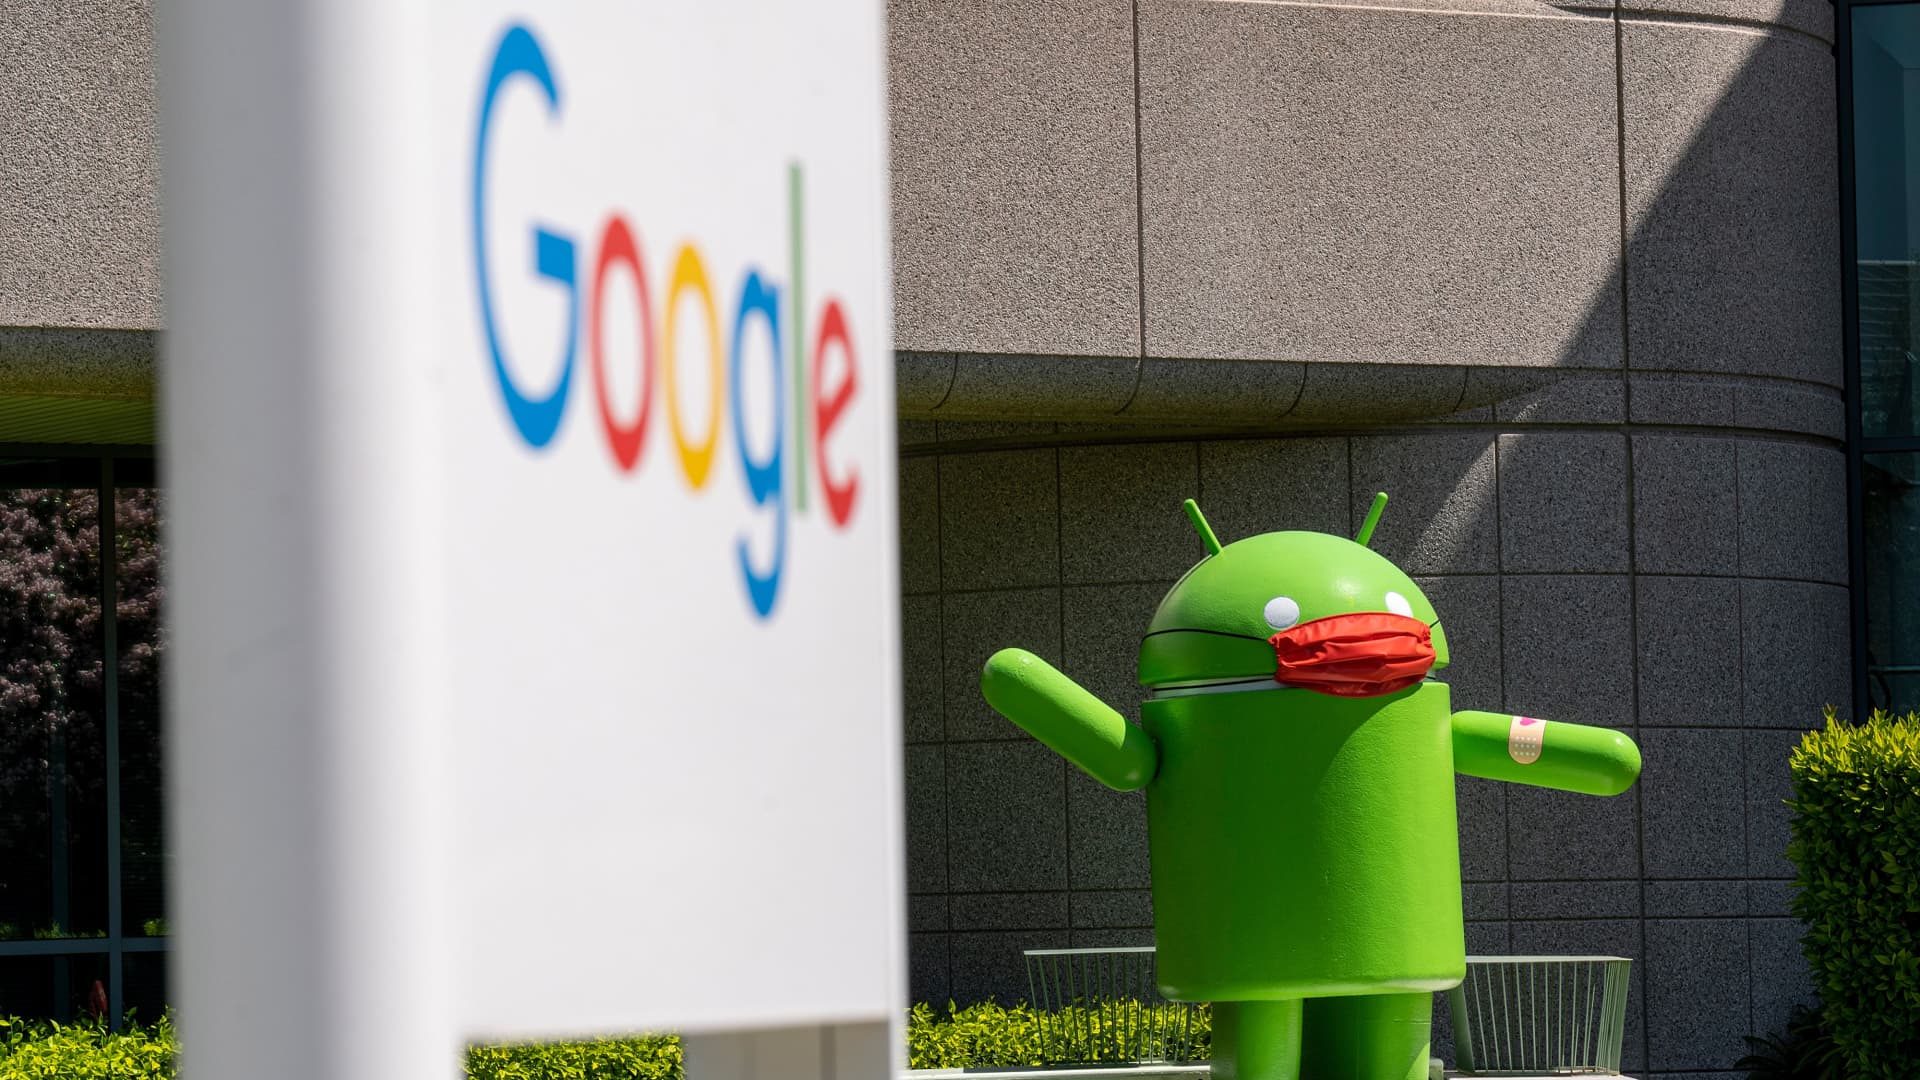 Google announced last week 60% of its workforce will work around three days a week in the office, 20% in new office locations, and 20% from home.